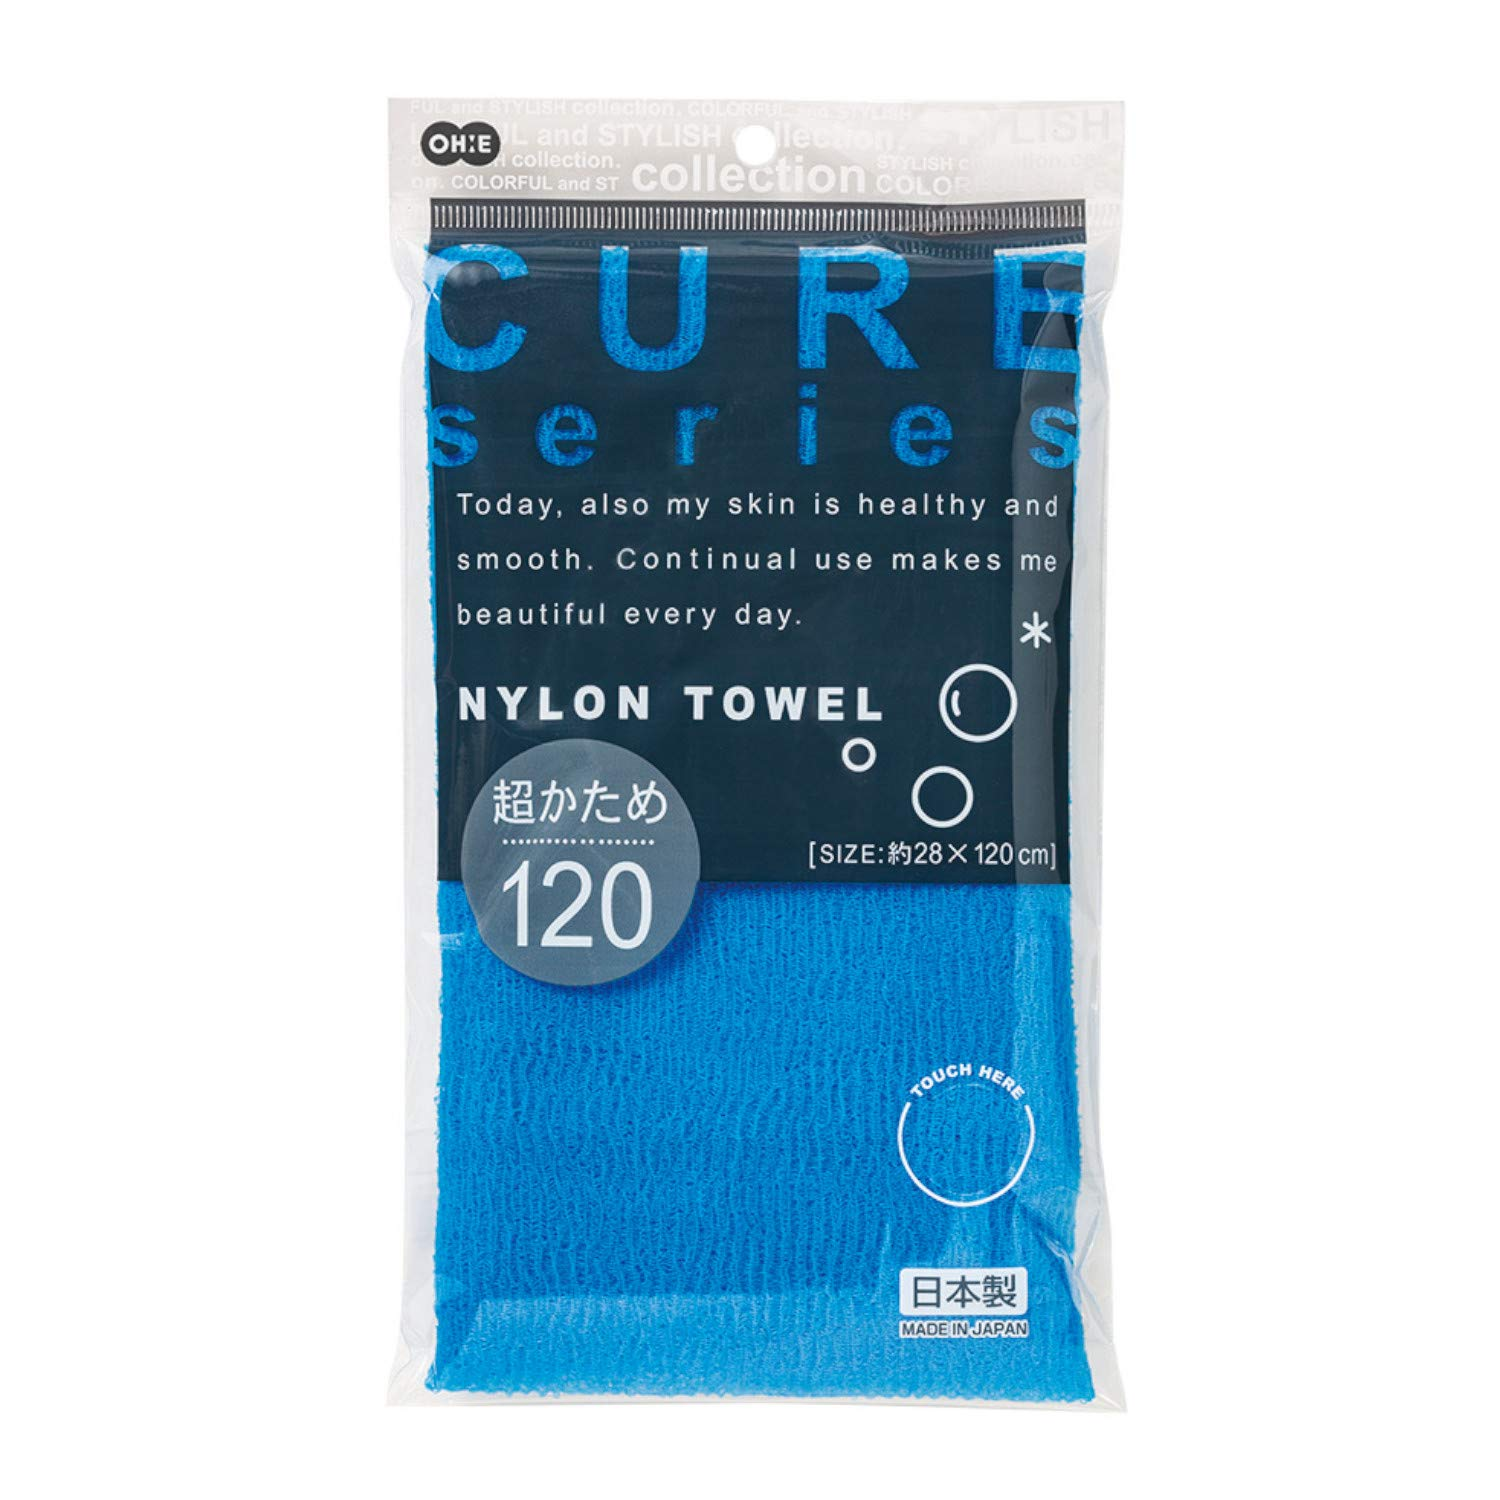 Blue Super Hard Weave Cure Series Japanese Exfoliating Bath Towel From OHE